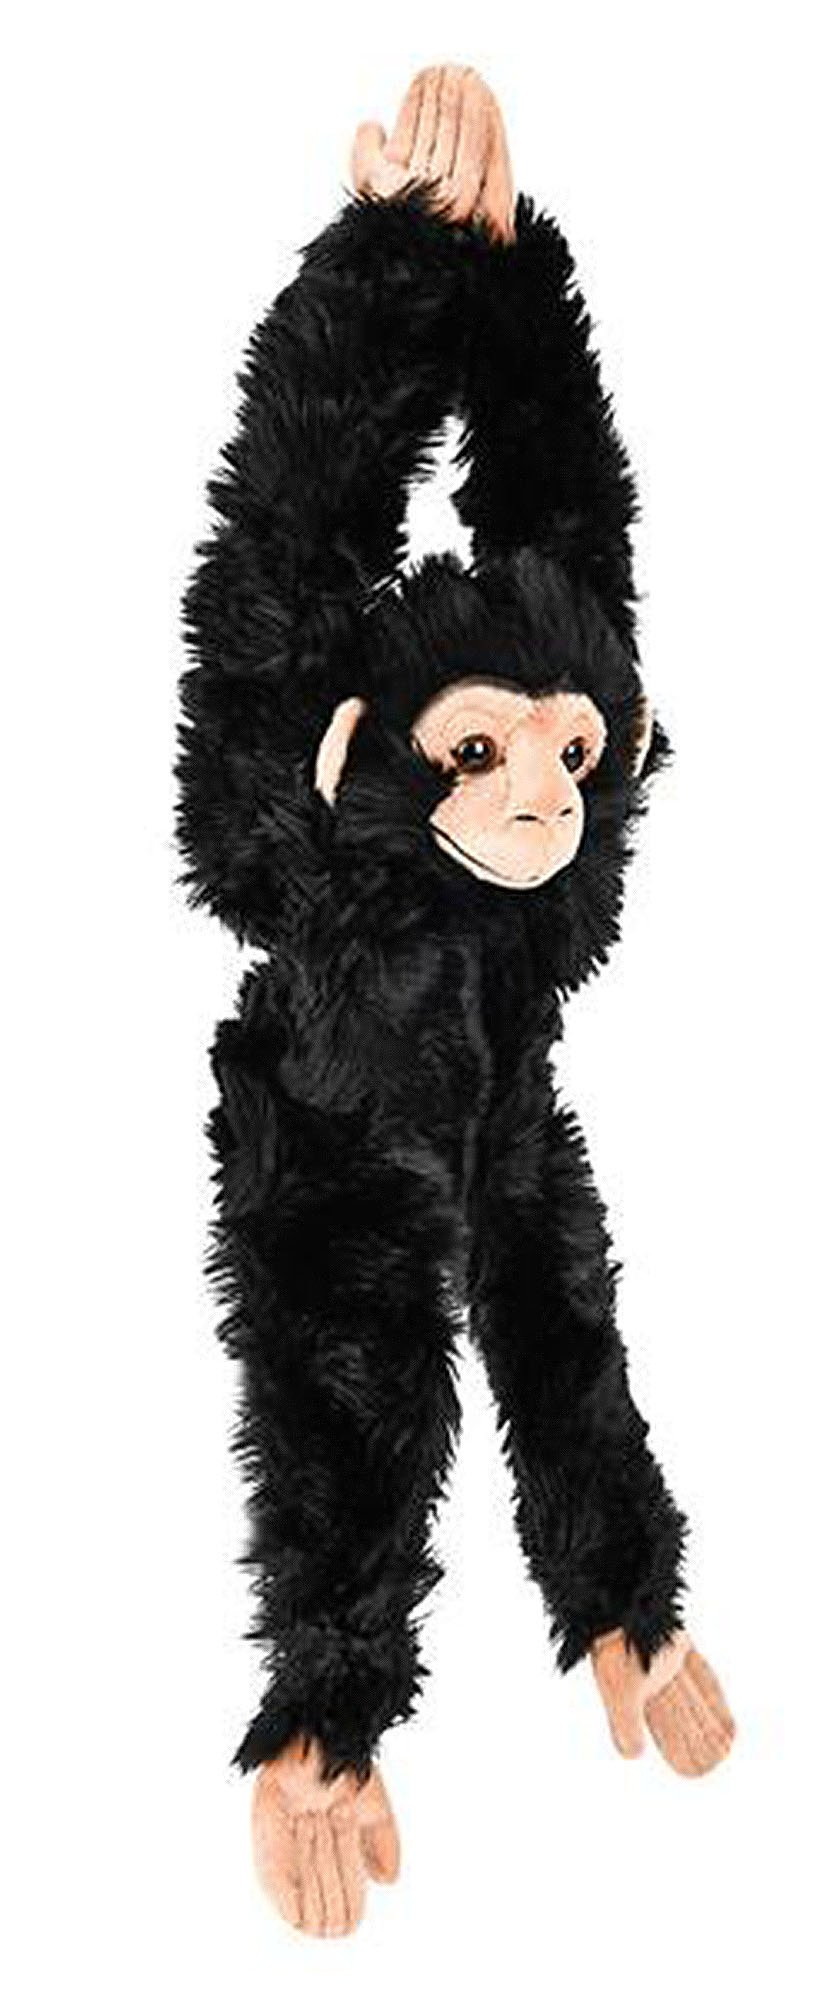 Wildlife Tree 18'' Hanging Stuffed Chimpanzee Plush Primate Heirloom Collection Chimp